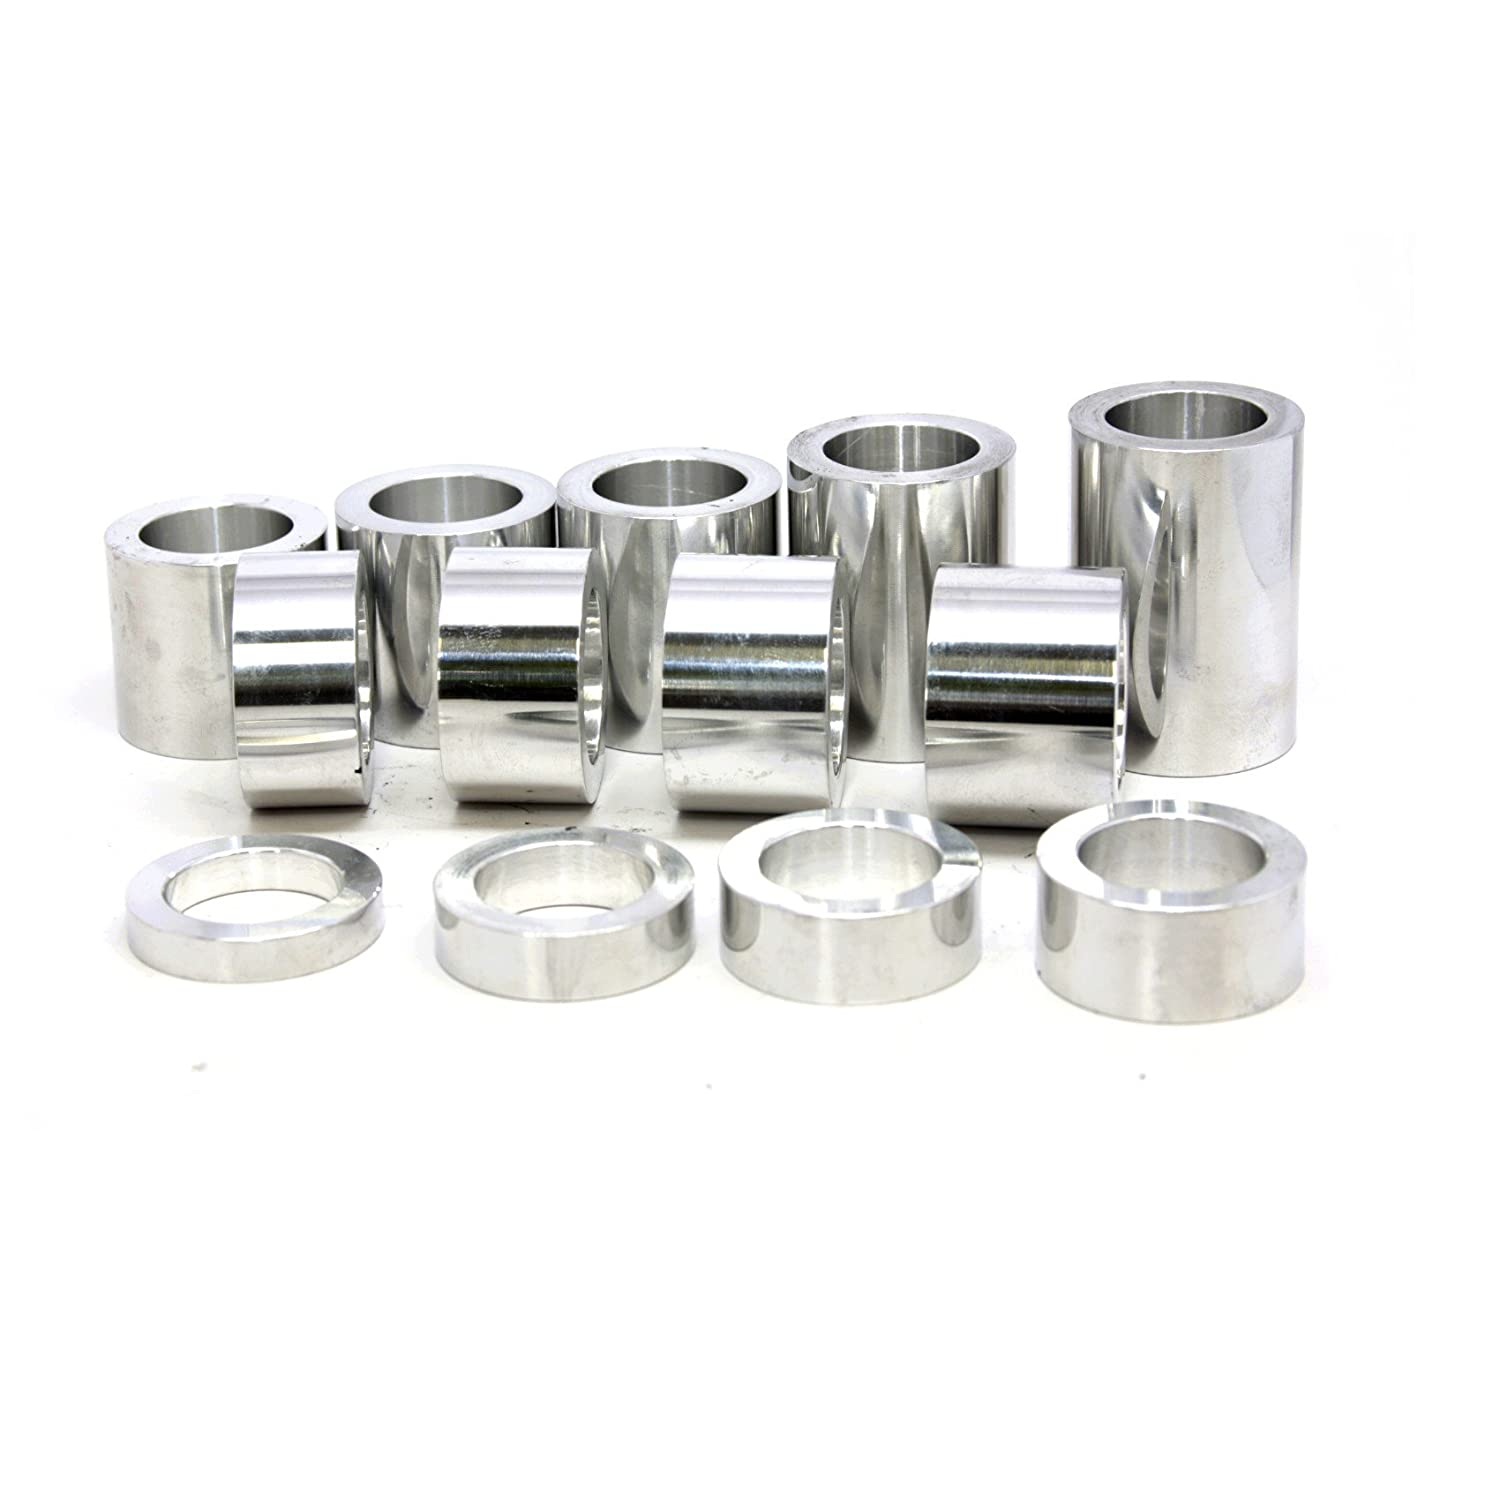 Wheel Axle Spacer Kit I.D - O.D 1-1//8 - 13 Spacers 0.75 3//4 1.125